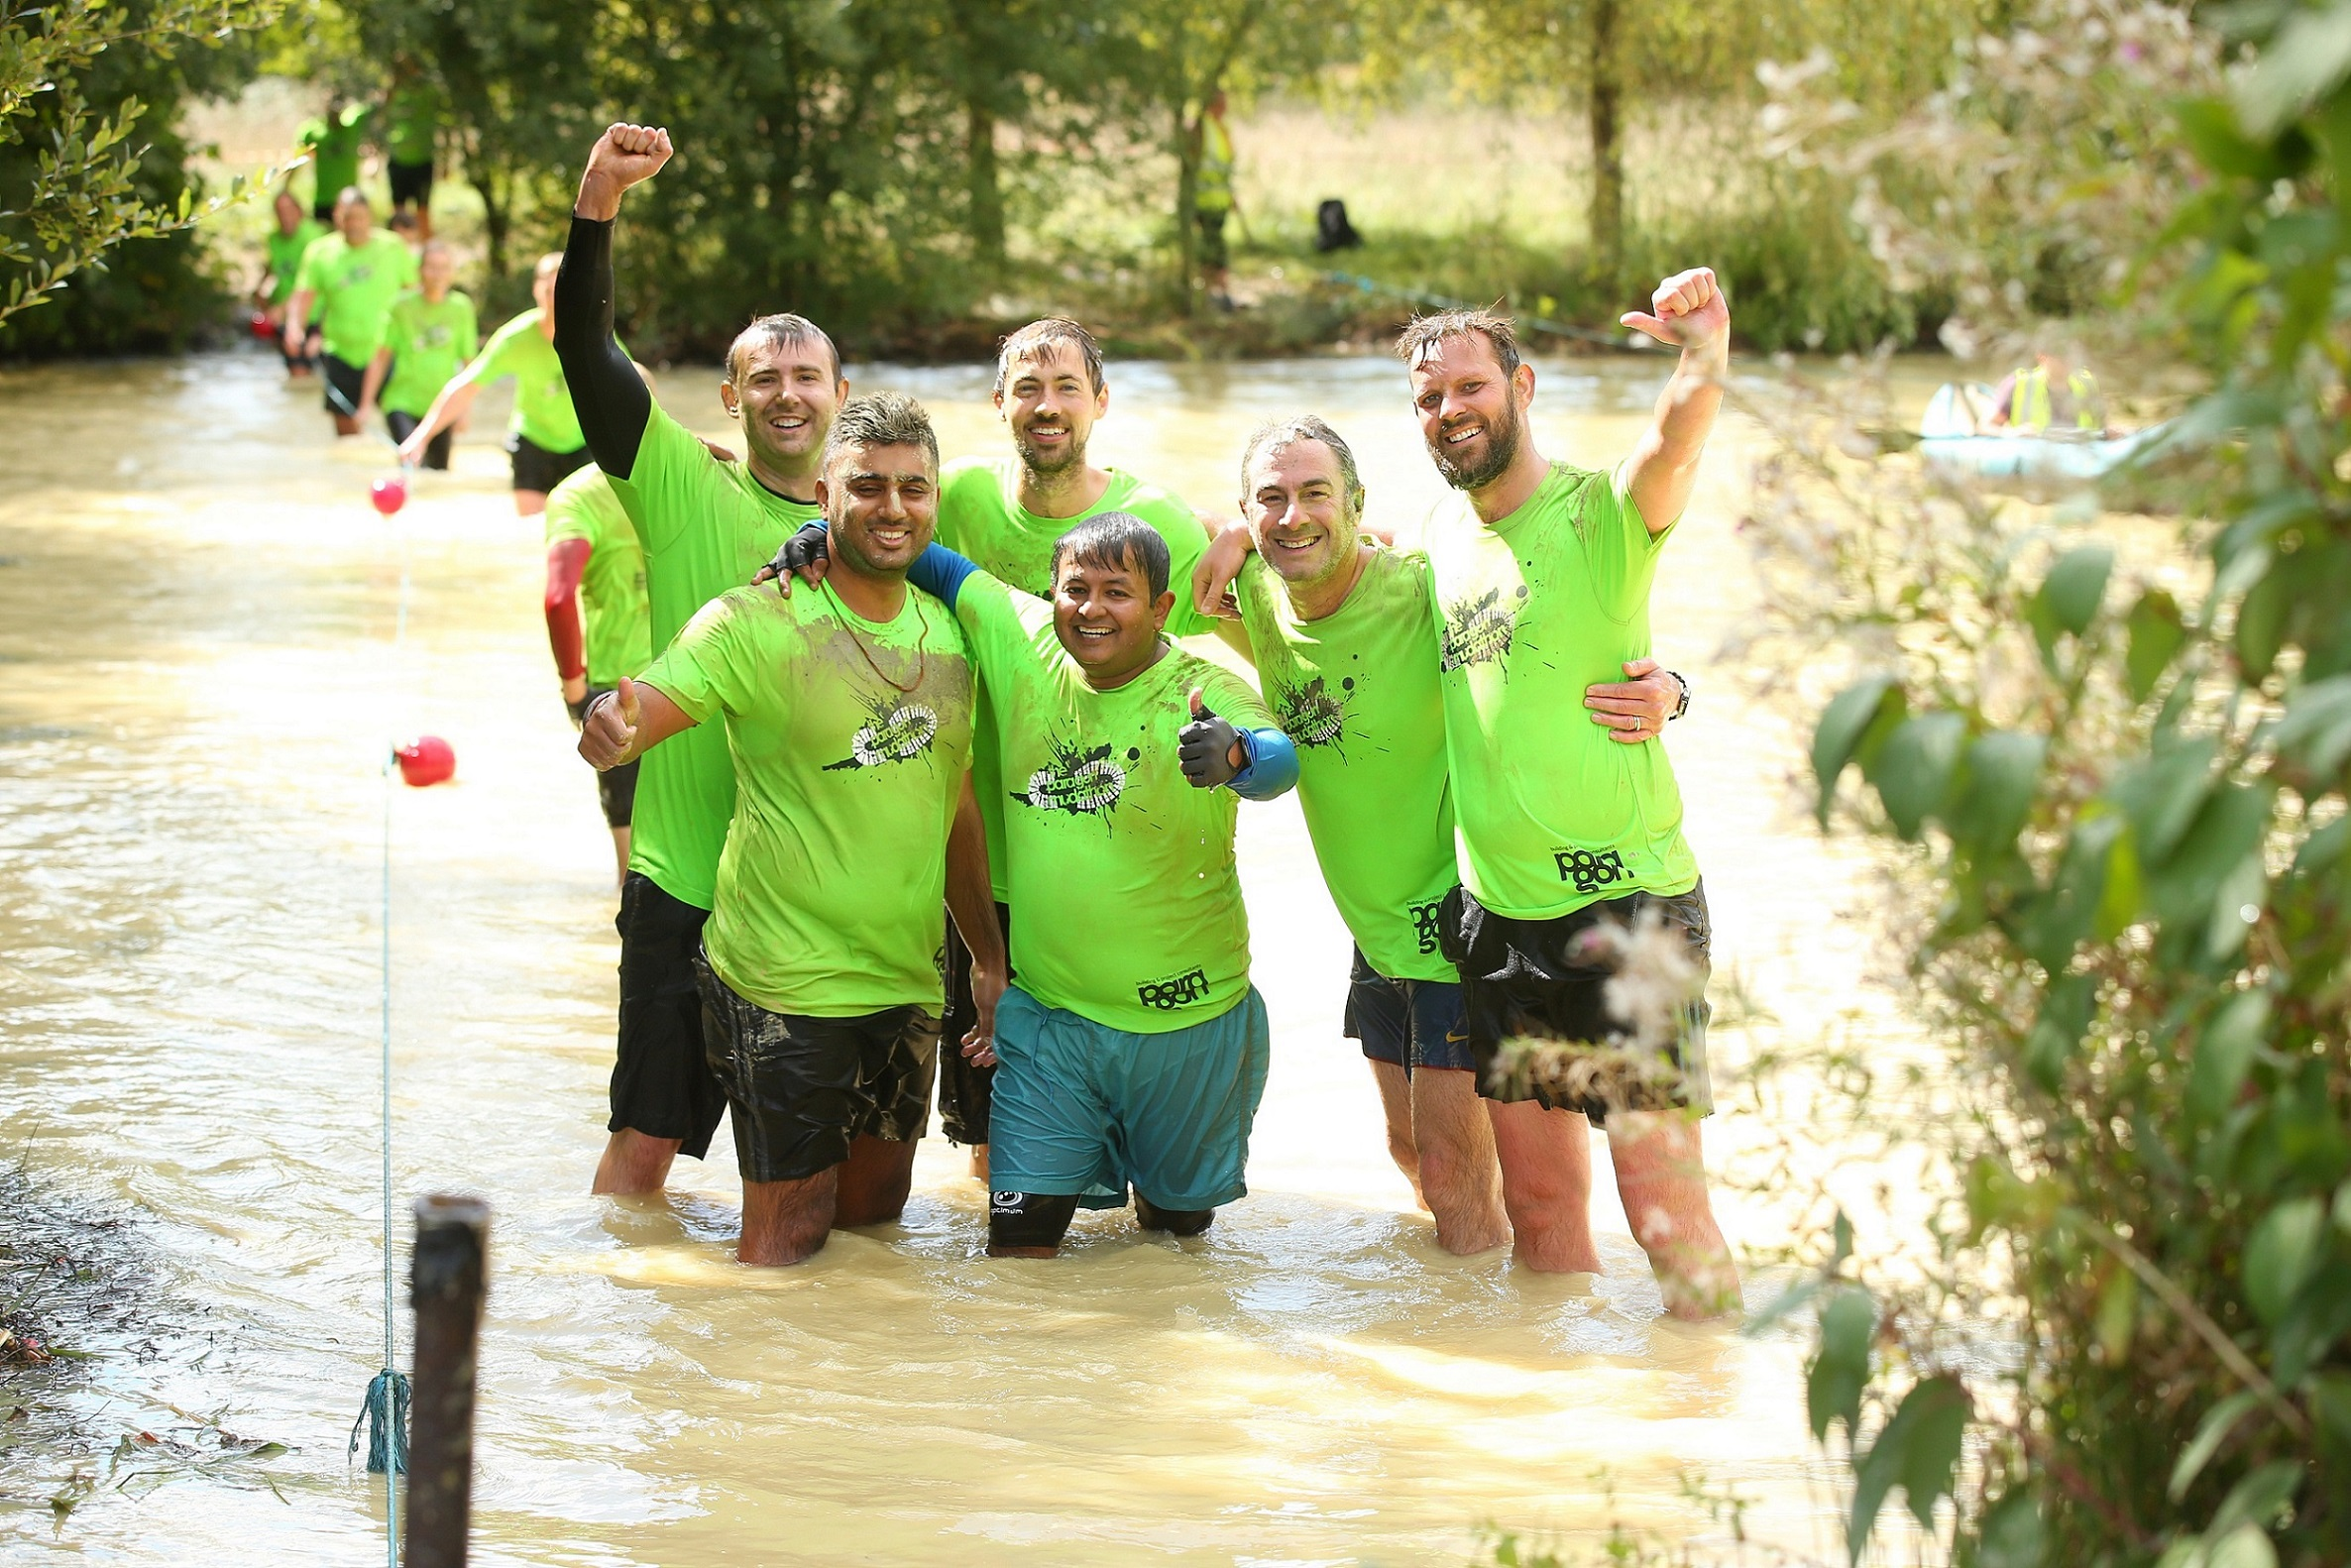 Paragon Mudathon raises £14,000 for LandAid and Macmillan with 331 property industry participants